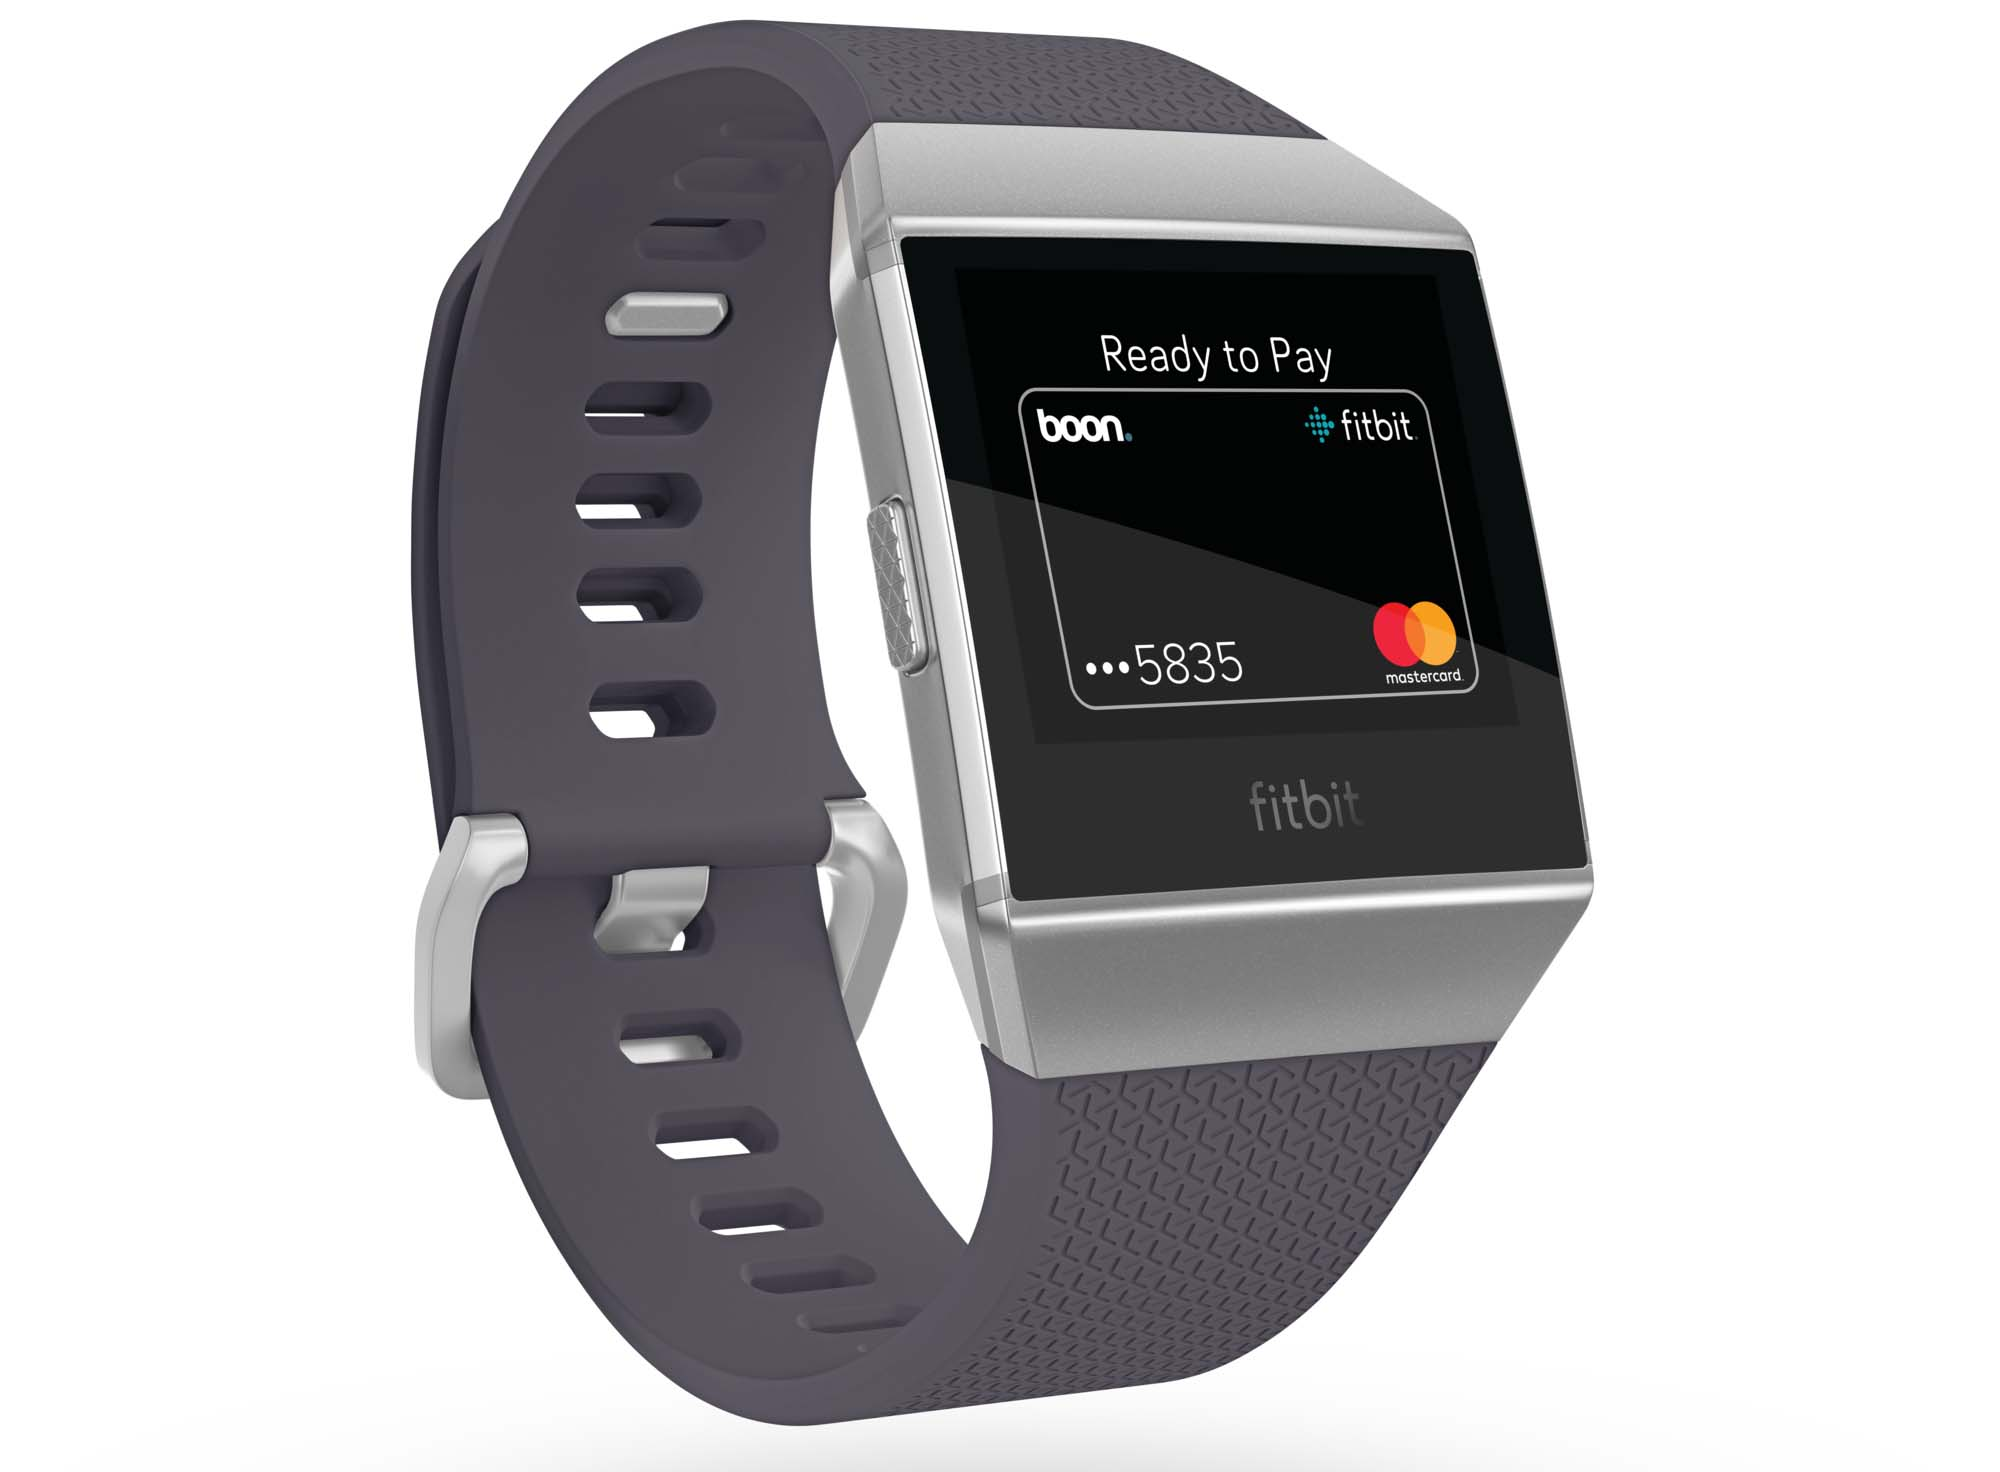 Ionic 3QTR Blue Gray Pay Mastercard Shadow 1